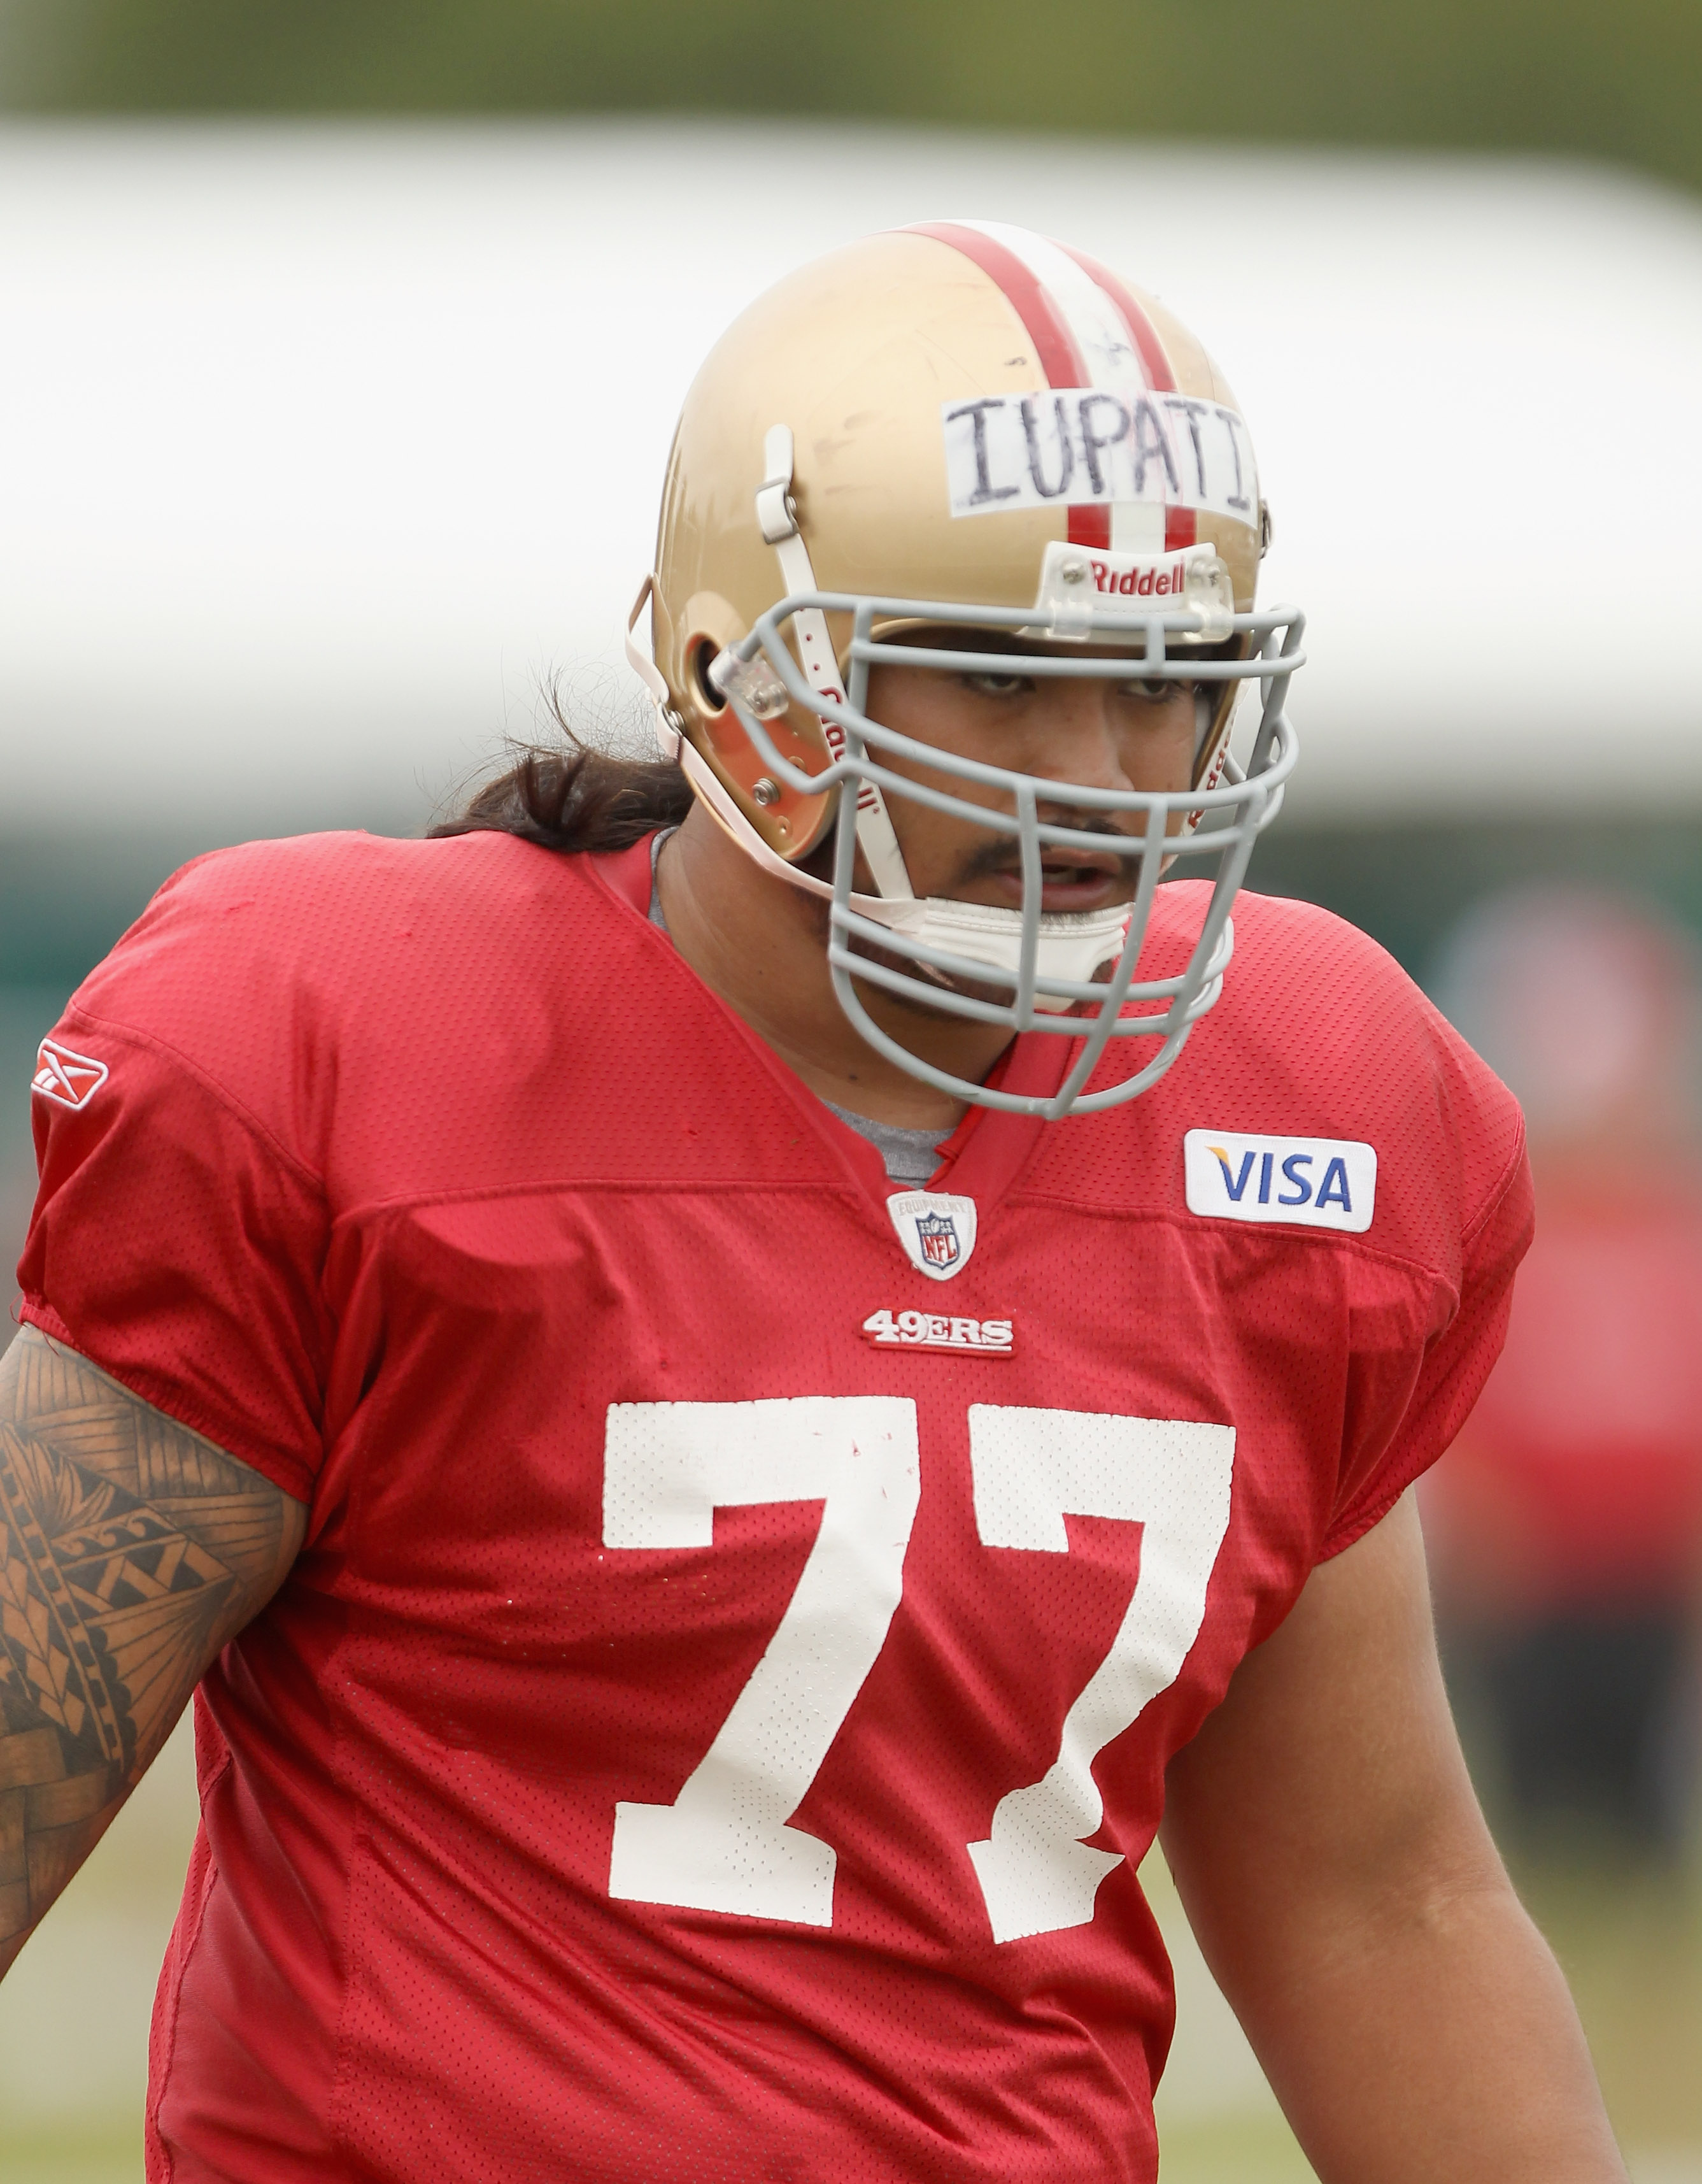 SANTA CLARA, CA - AUGUST 02:  Mike Iupati #77 works out during the San Francisco 49ers training camp at their training complex on August 2, 2010 in Santa Clara, California.  (Photo by Ezra Shaw/Getty Images)